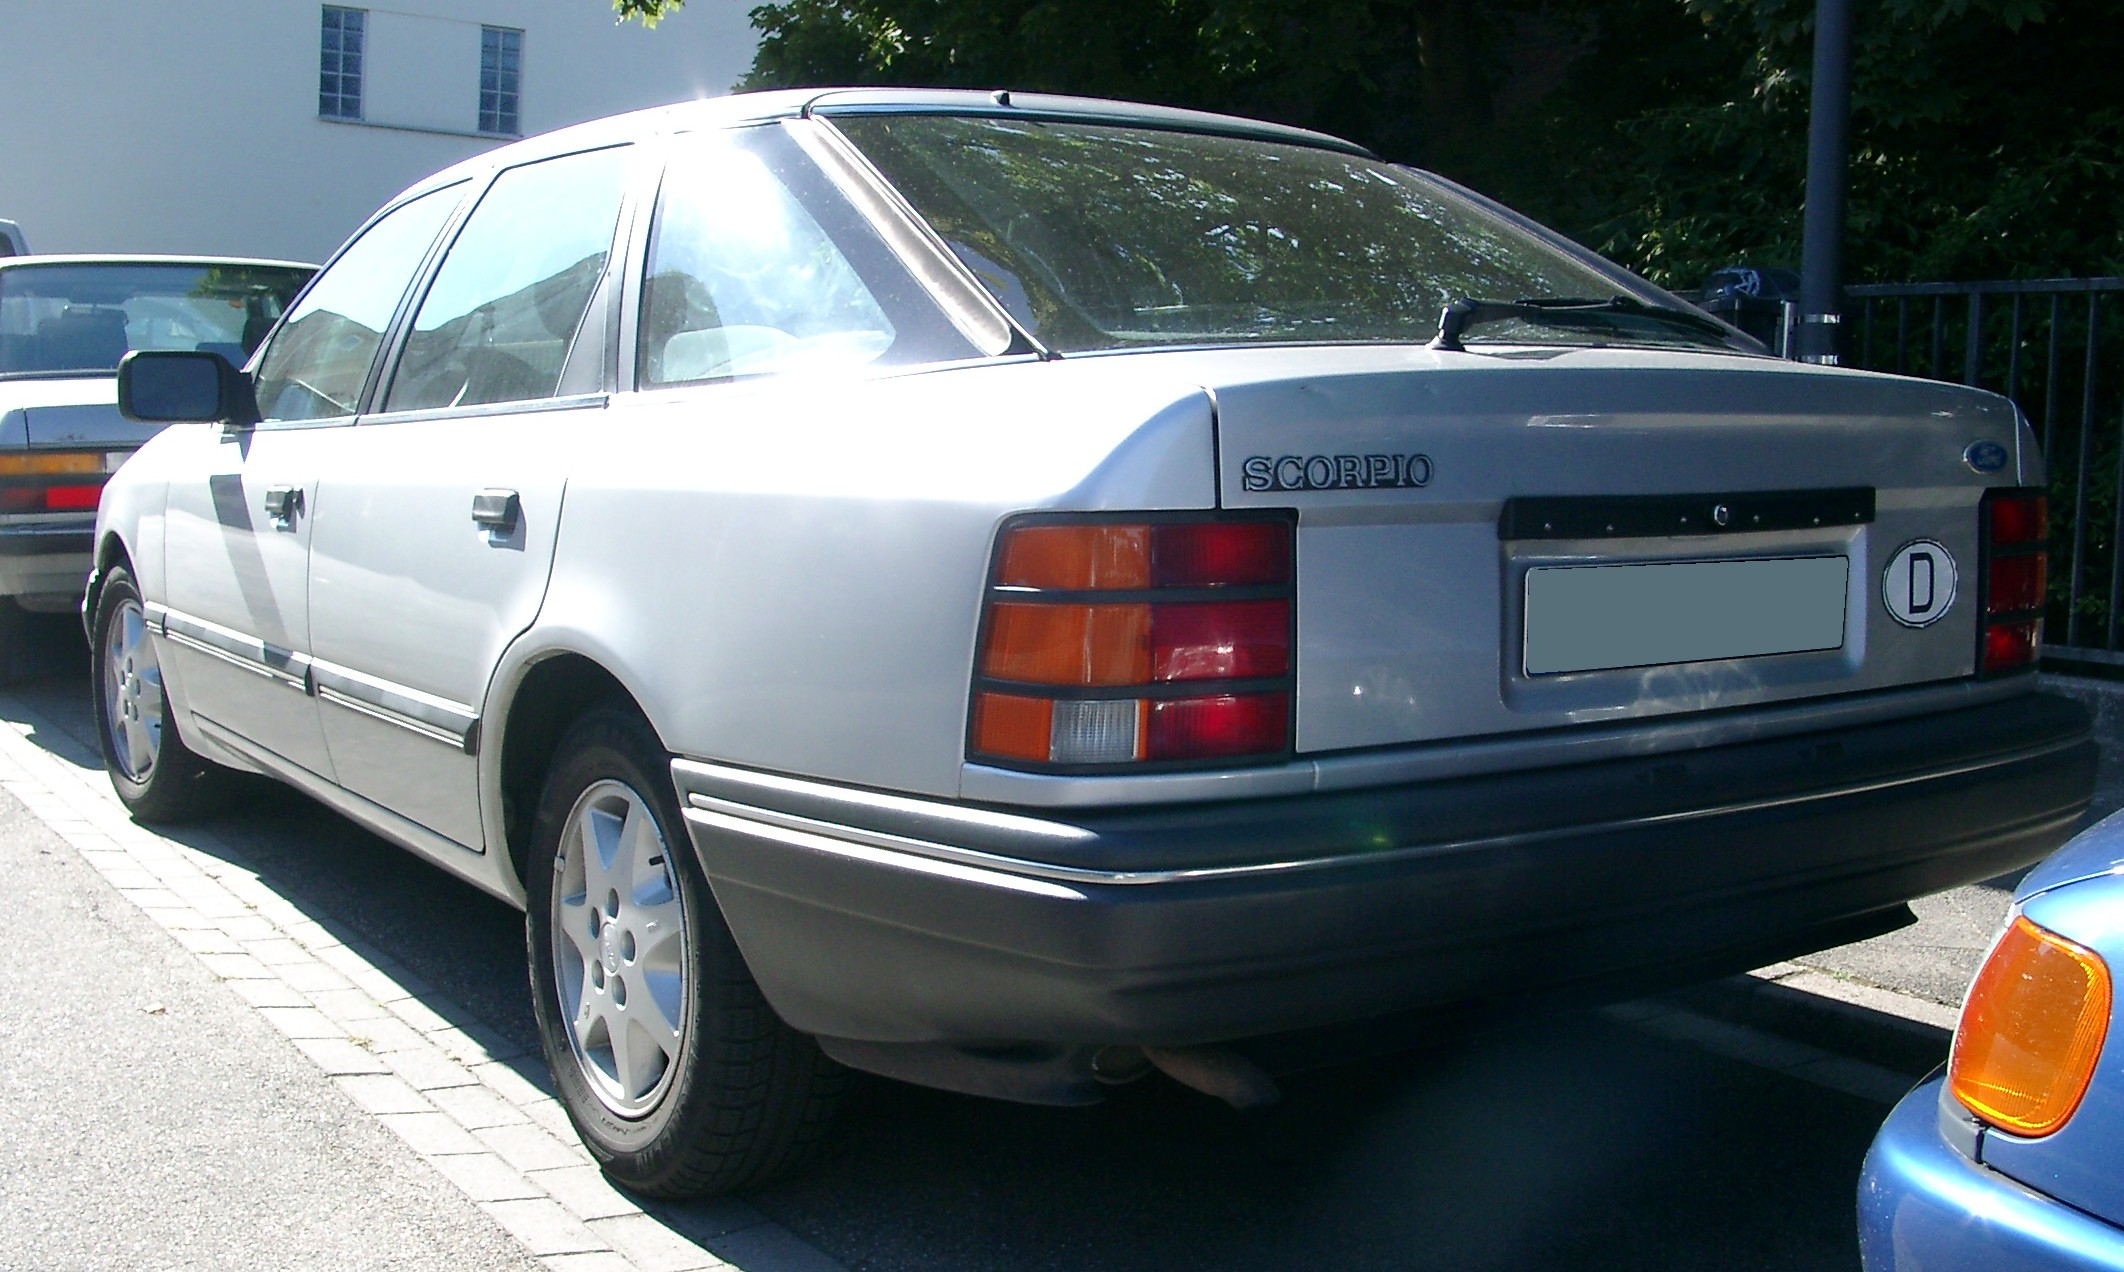 Ford Scorpio   pictures, information and specs - Auto-Database.com